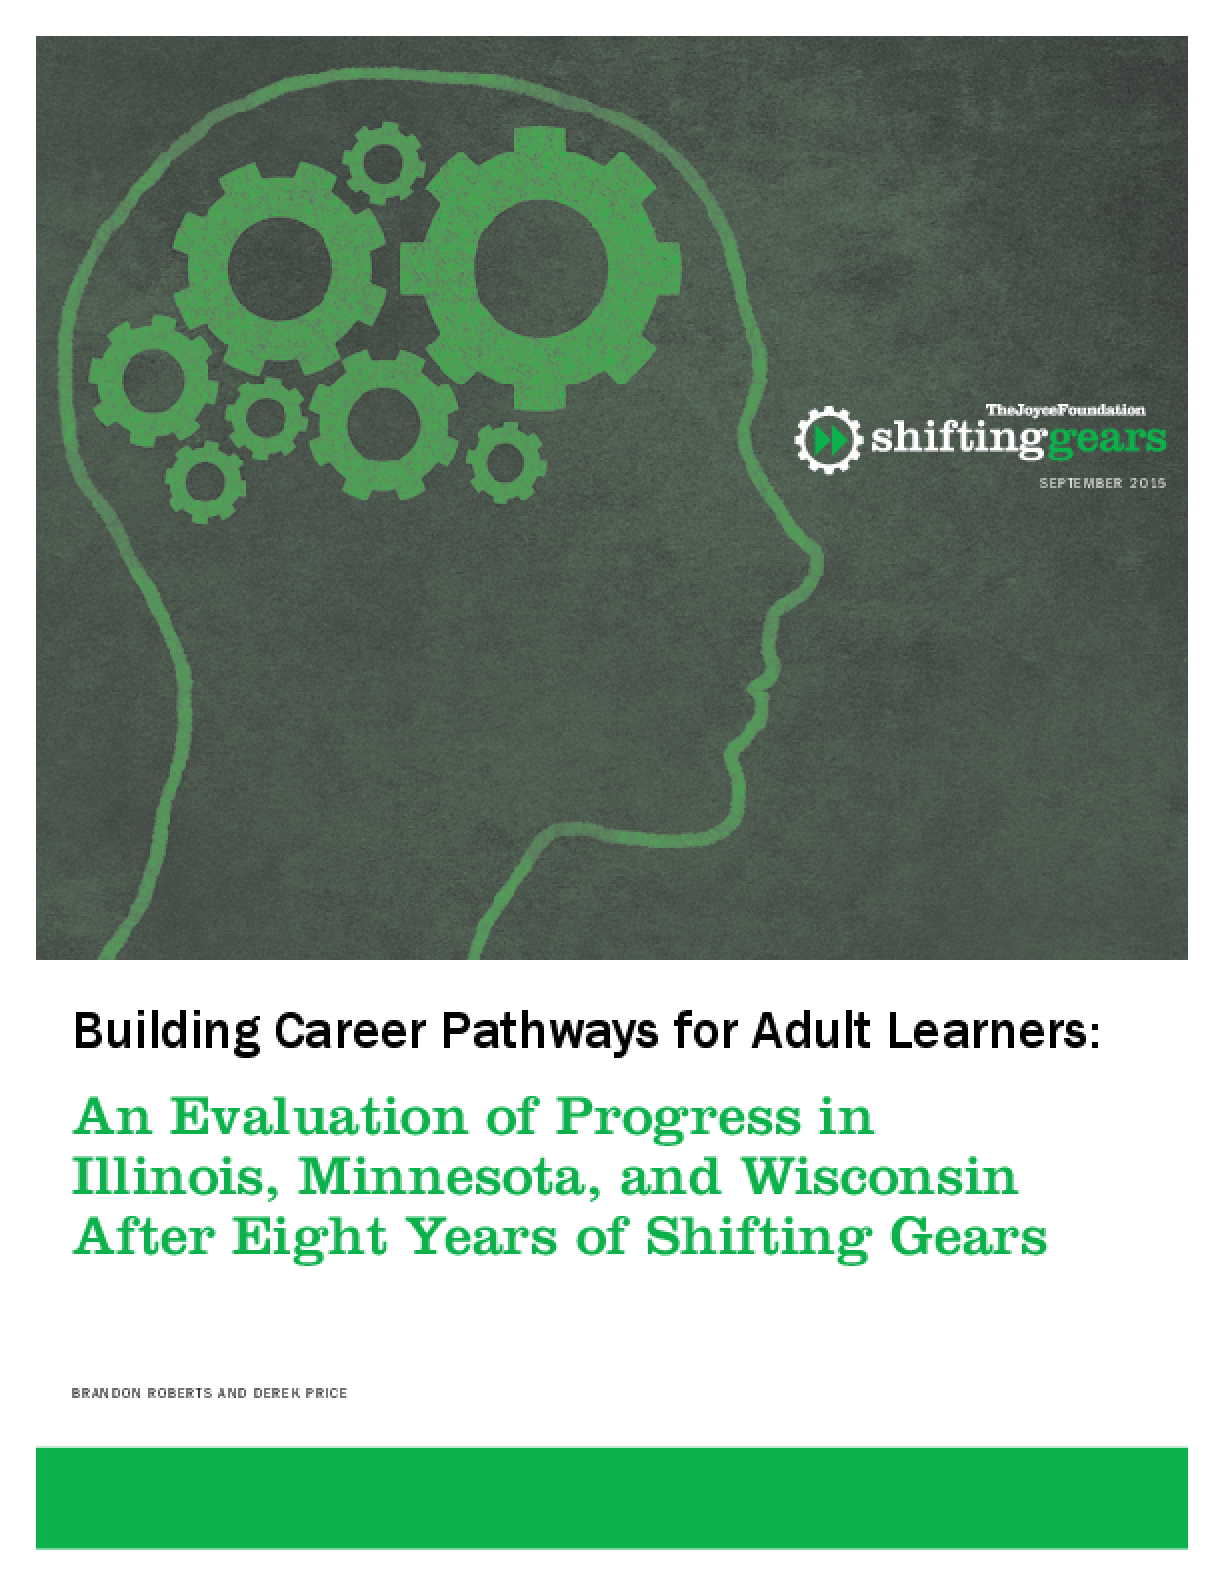 Building Career Pathways for Adult Learners: An Evaluation of Progress in Illinois, Minnesota, and Wisconsin After Eight Years of Shifting Gears